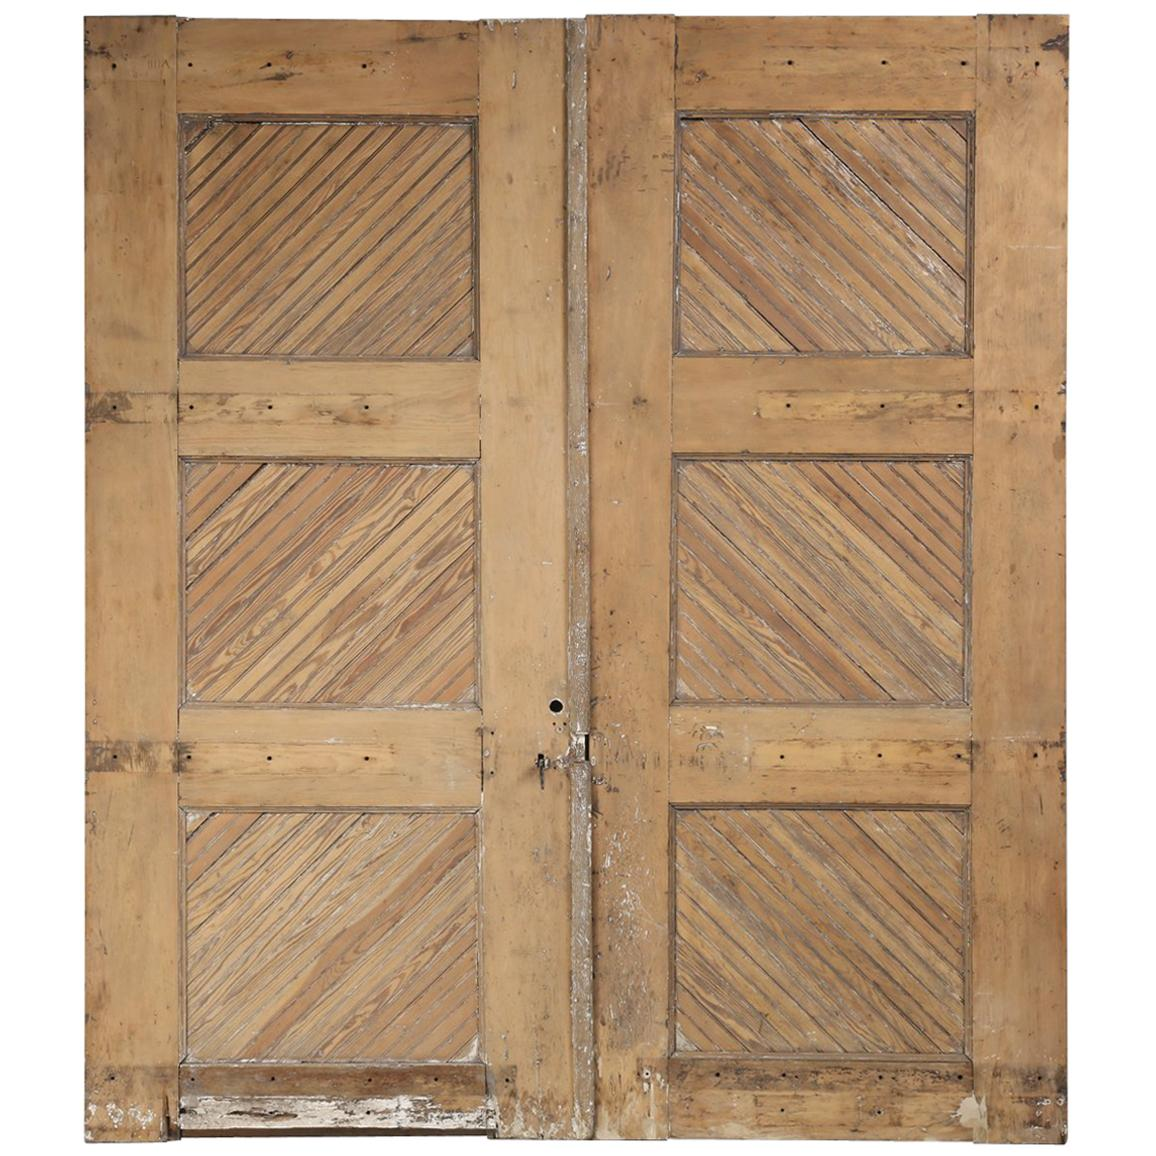 Antique American Garage or Barn Doors, circa 1890s